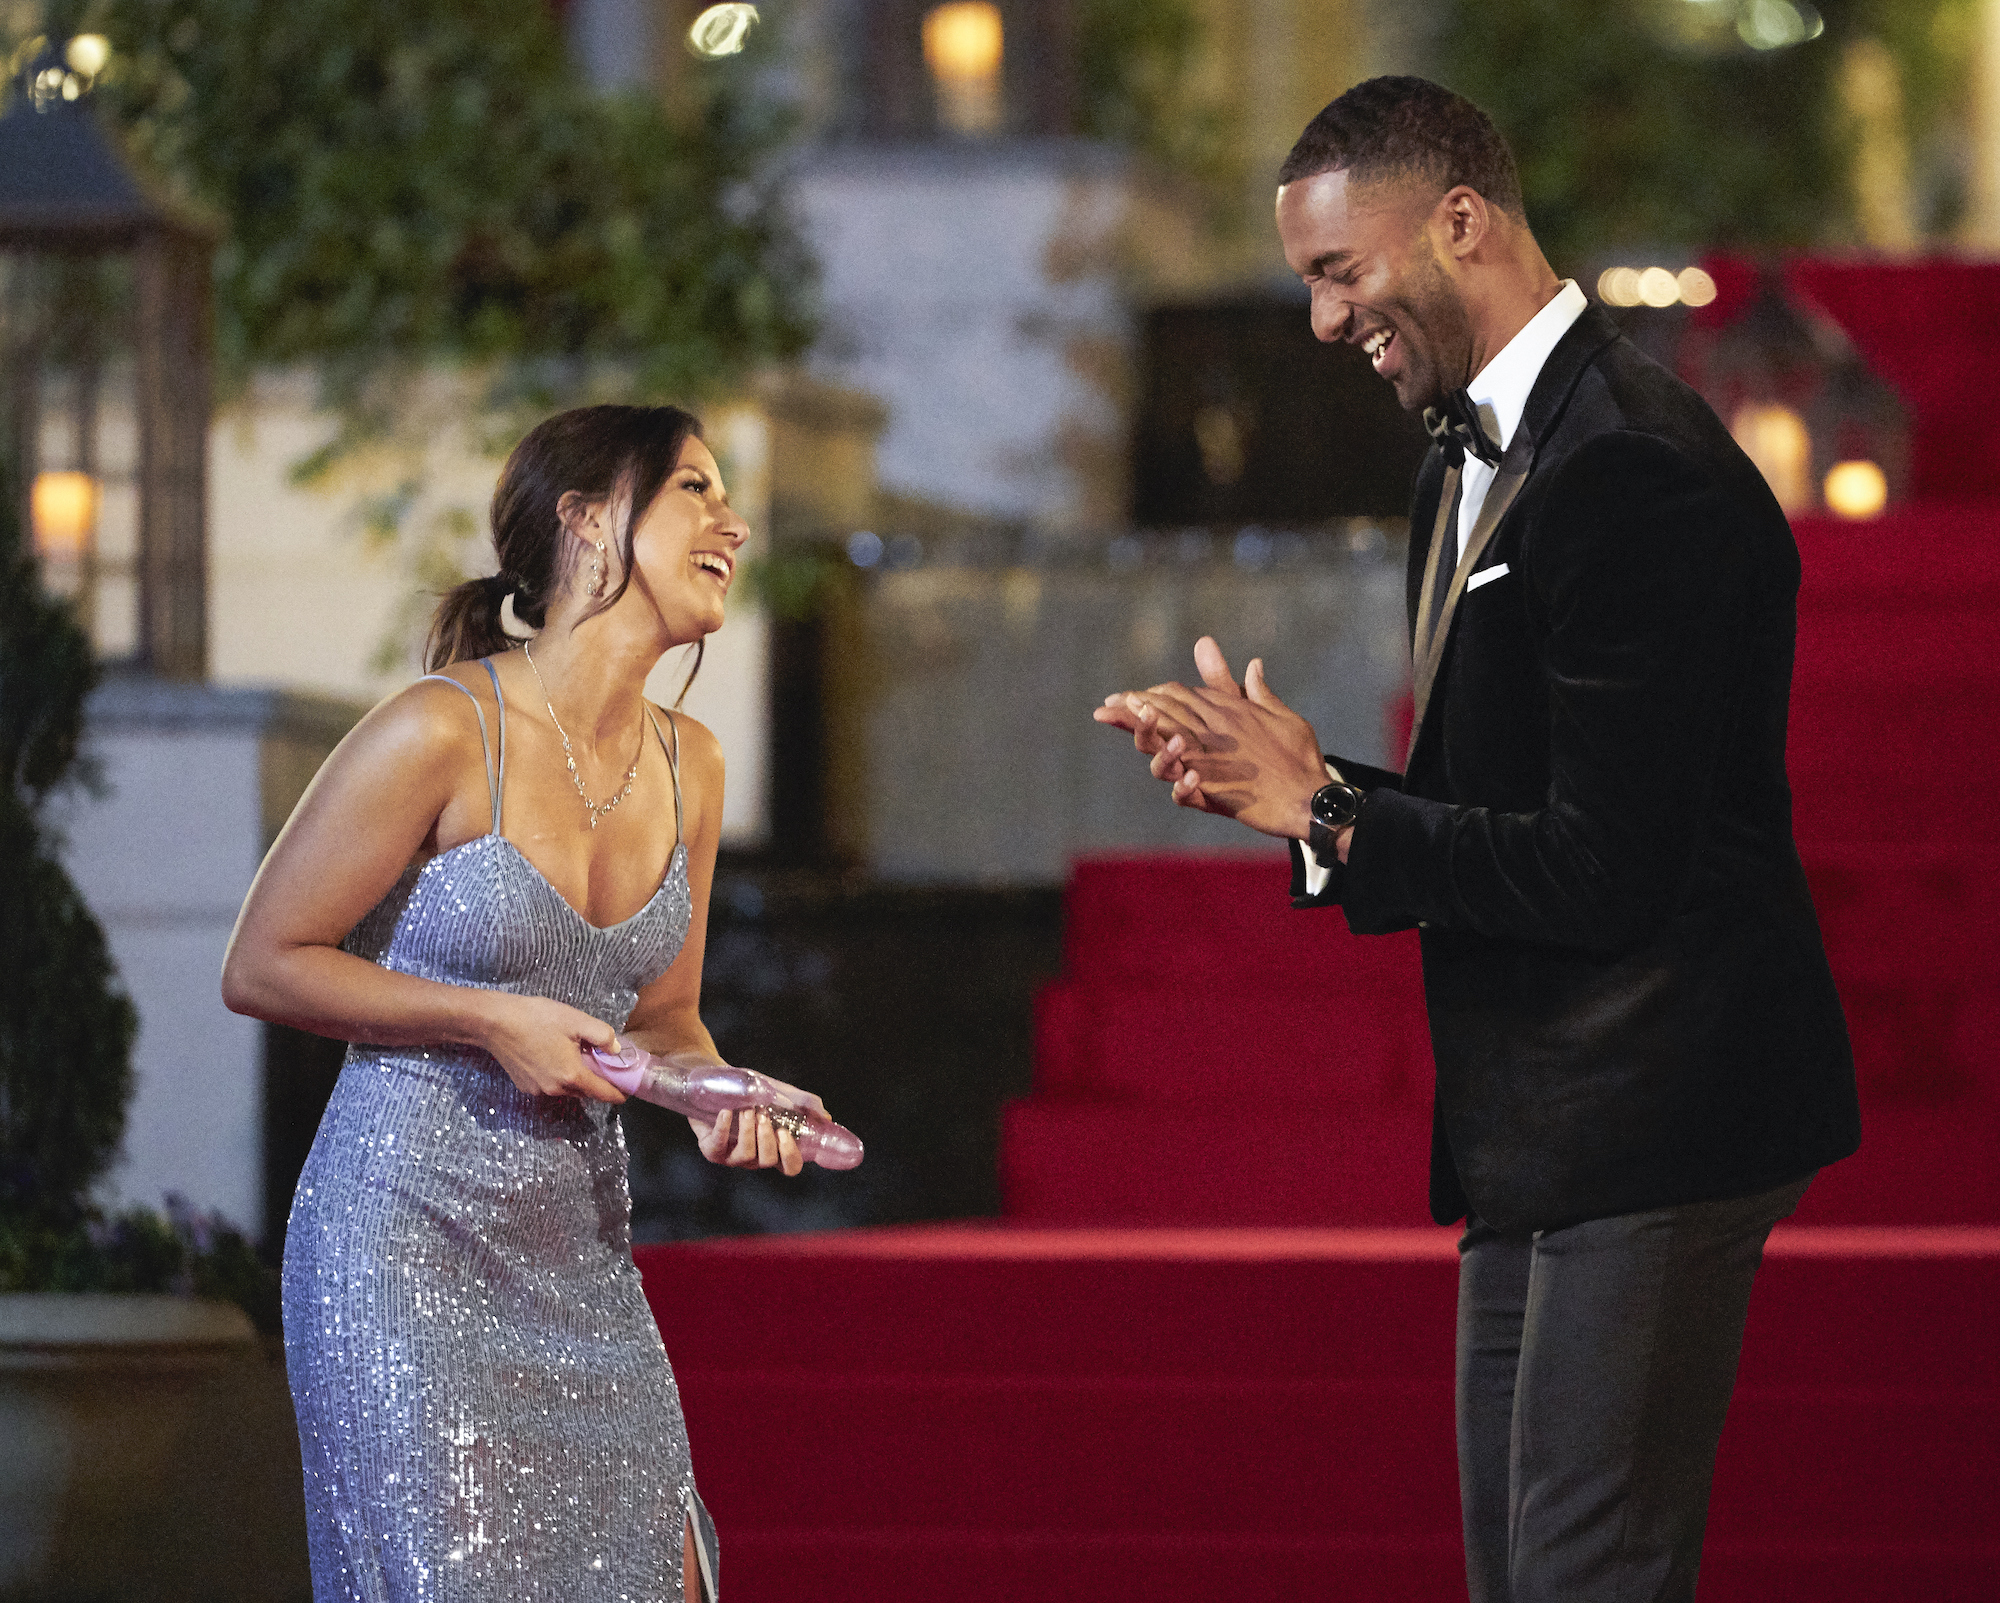 Katie Thurston with her vibrator on Night 1, and Matt James on 'THE BACHELOR'